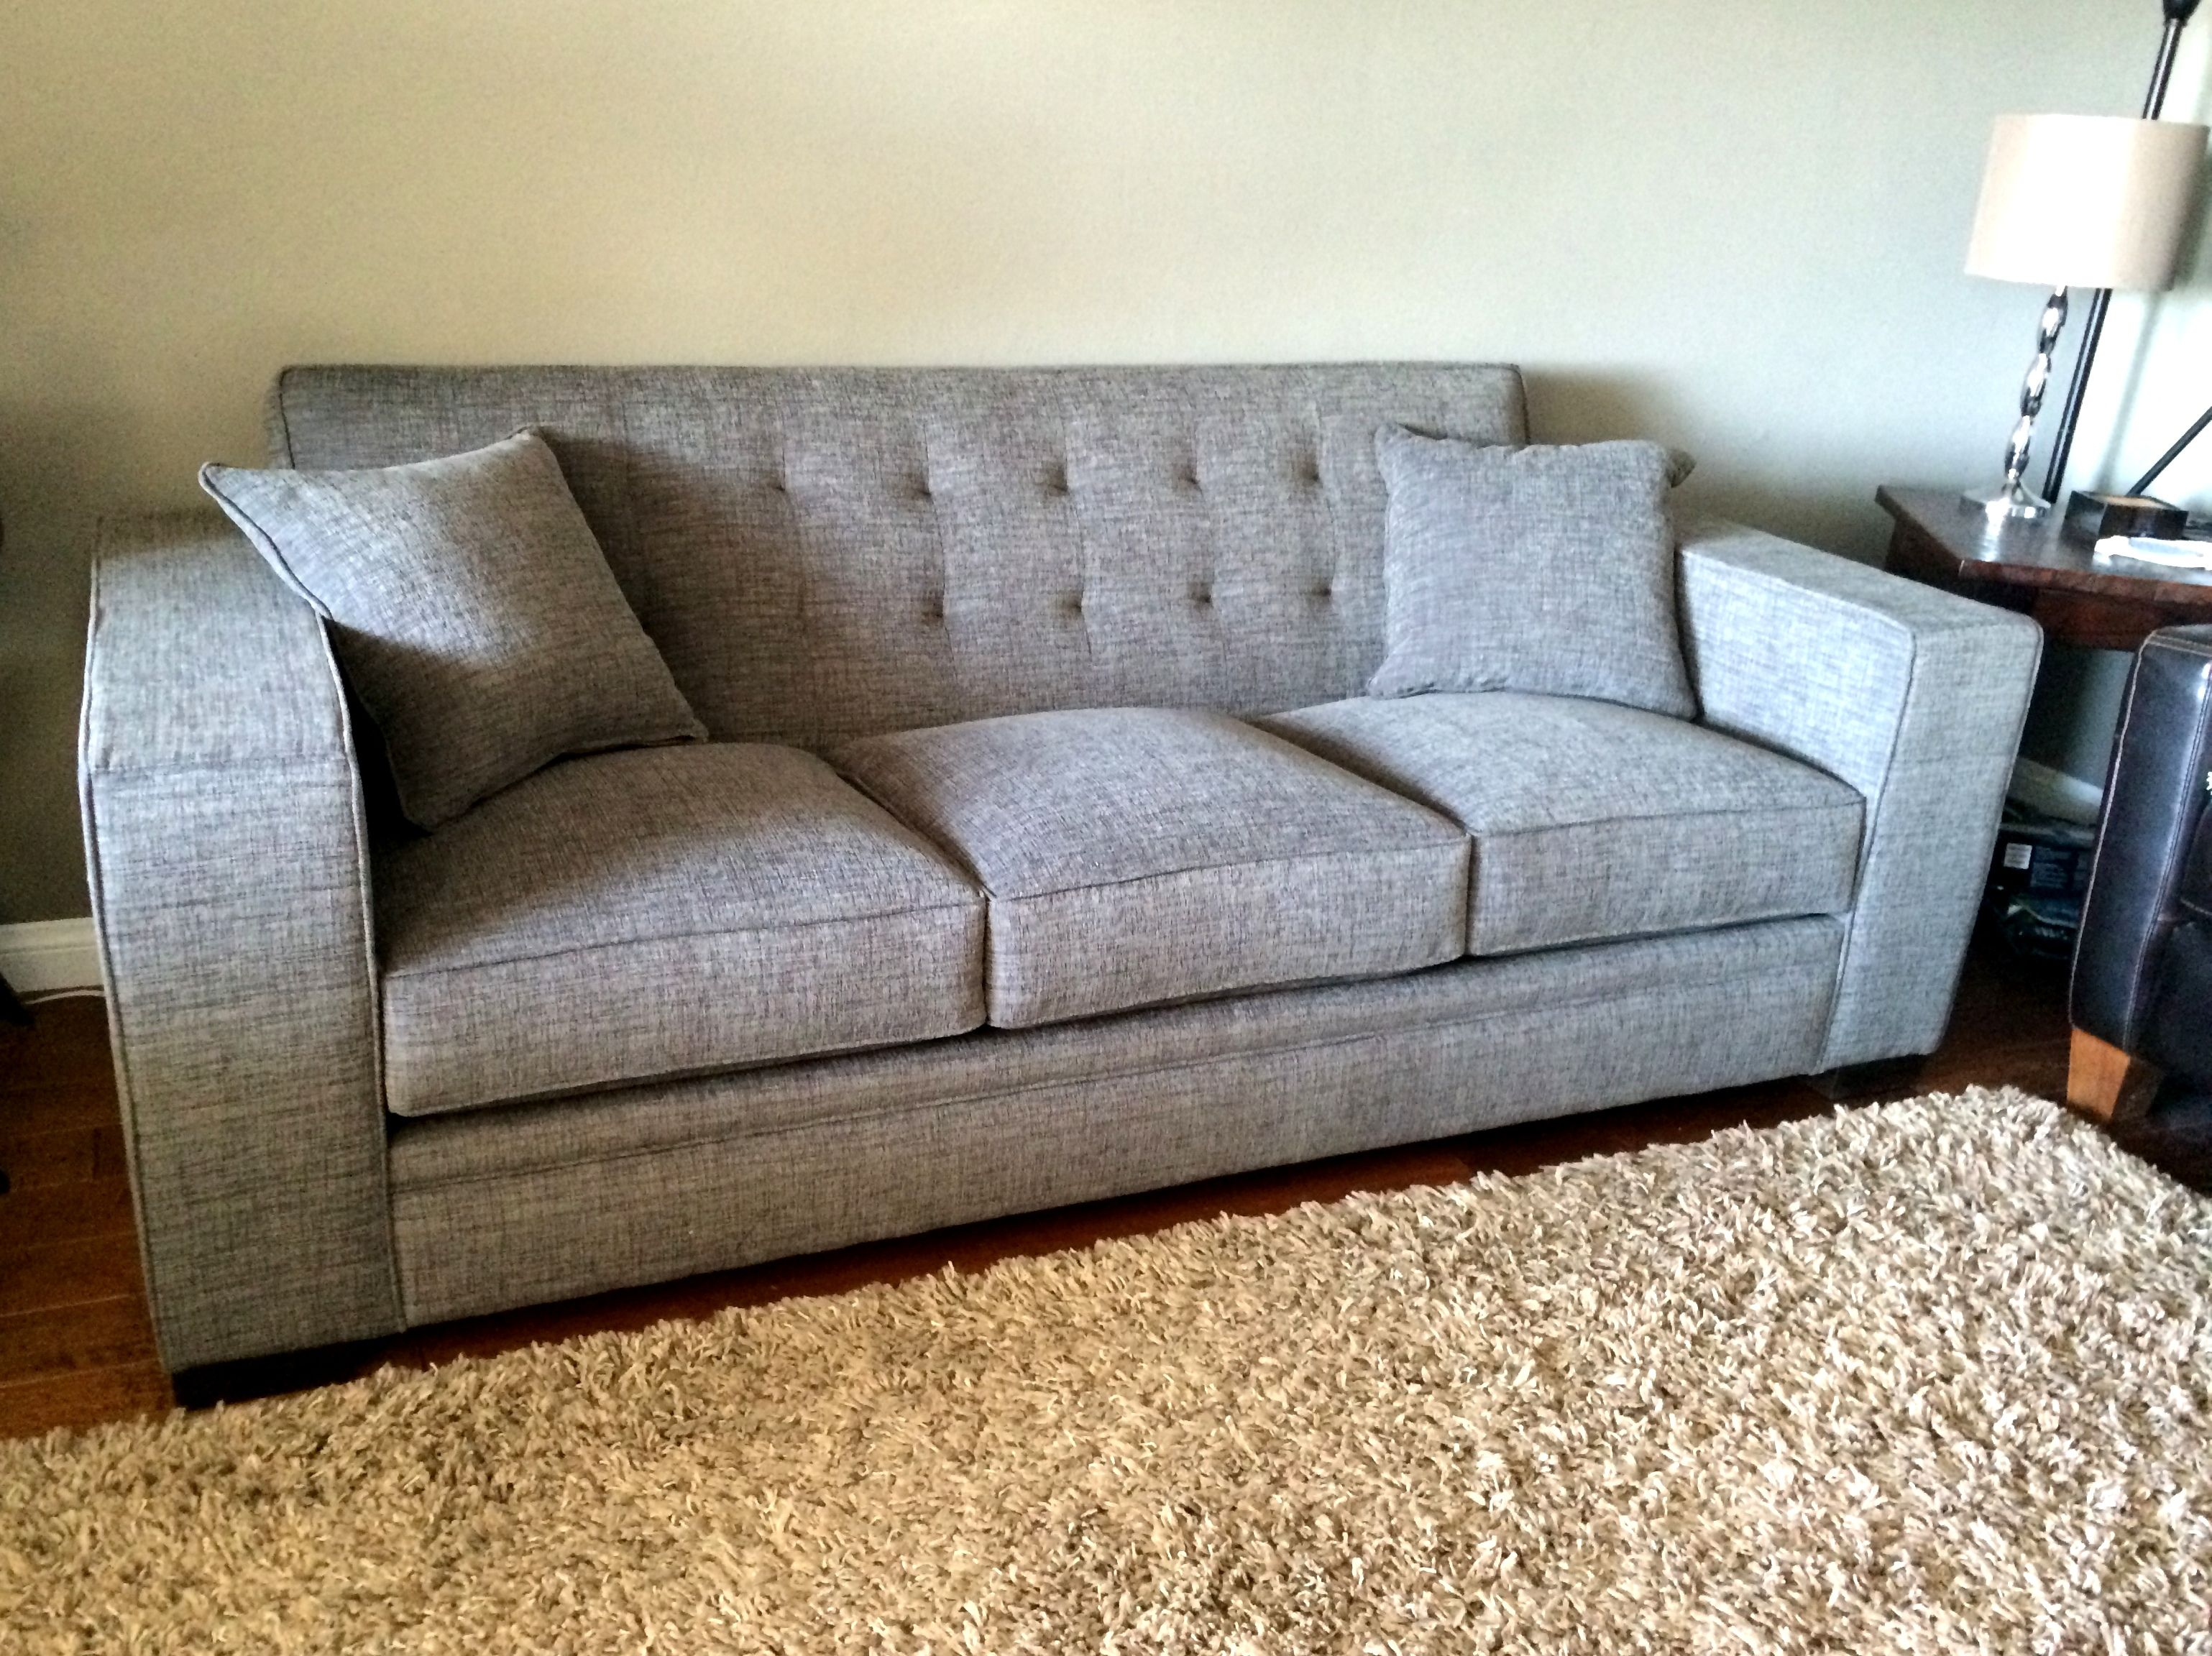 best sectional sofas los angeles replacement legs for ikea sofa orange county gradschoolfairs